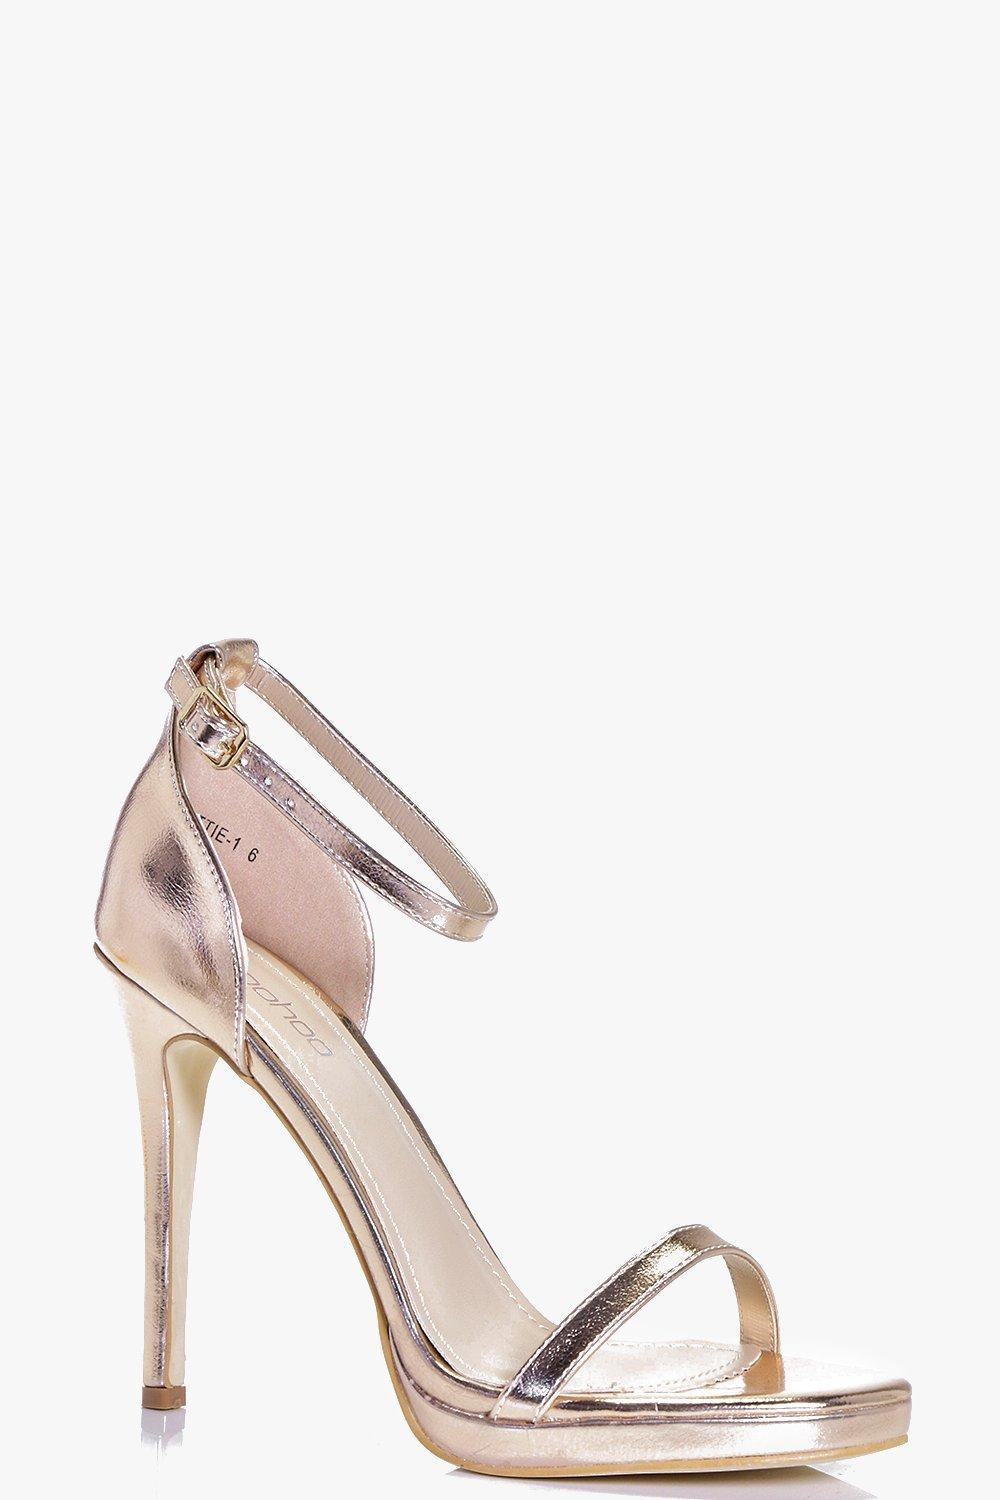 Elizabeth Metallic Single Platform Two Part Heels